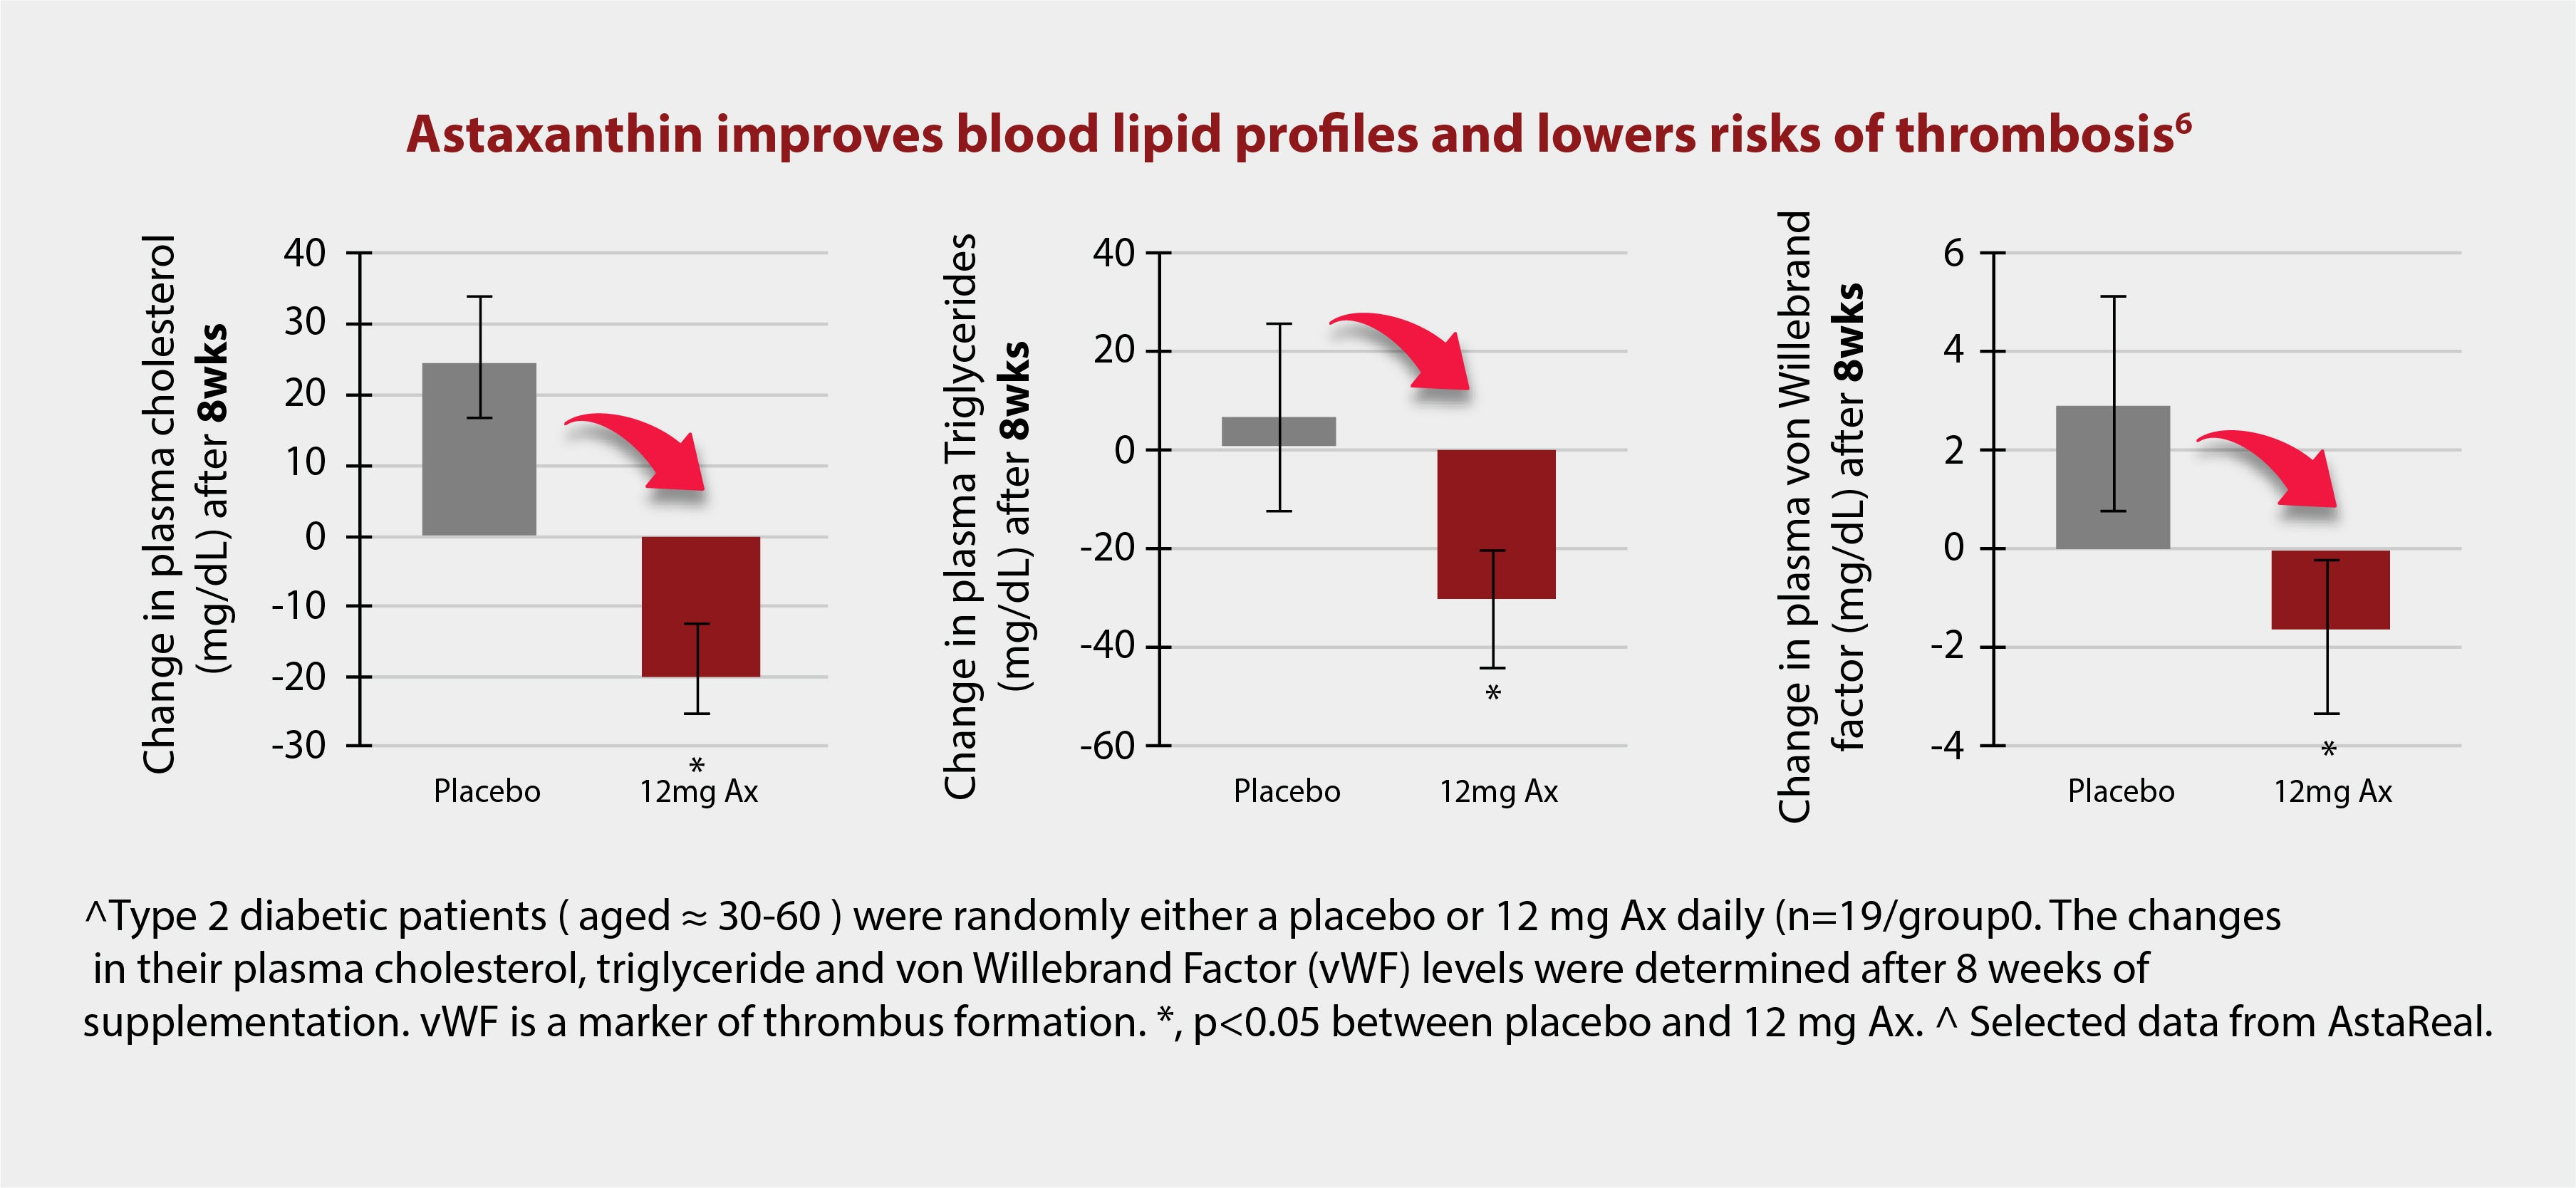 Astaxanthin improves blood lipid profile and lowers thrombotic risks in type 2 diabetic and prediabetic individuals